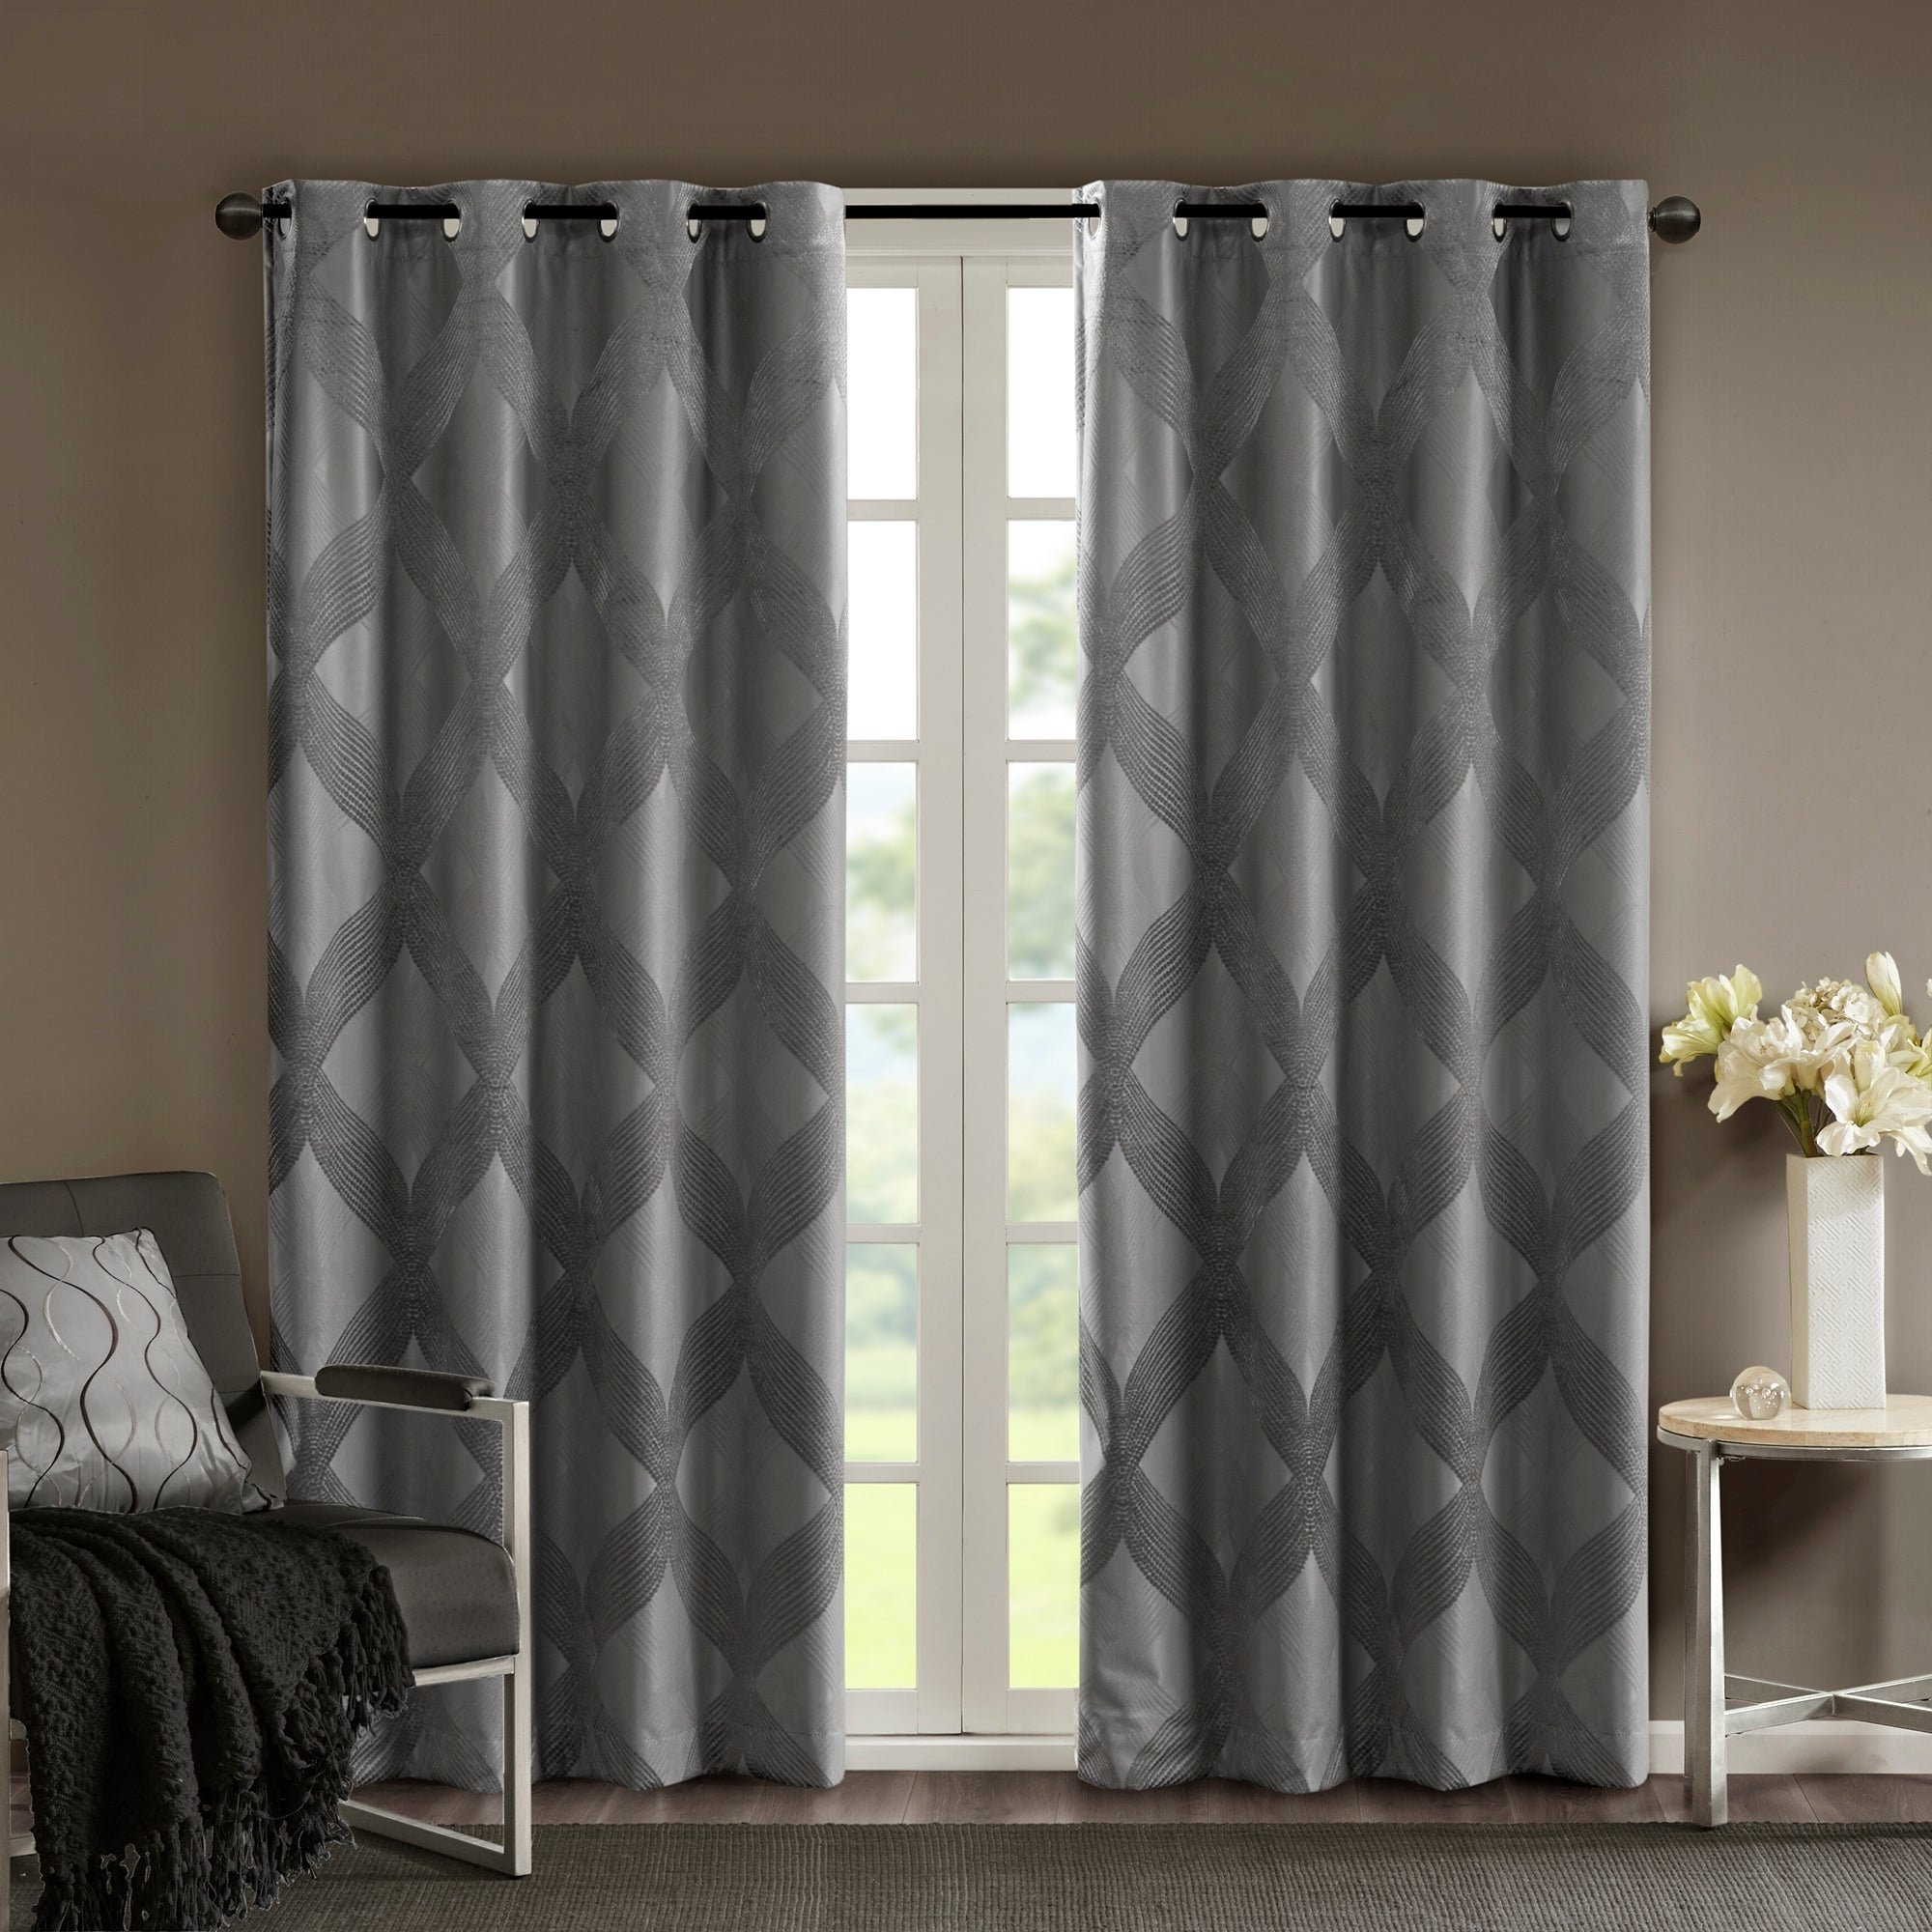 Widely Used Sunsmart Abel Ogee Knitted Jacquard Total Blackout Curtain Panels With Sunsmart Abel Ogee Knitted Jacquard Total Blackout Curtain Panel (View 2 of 20)